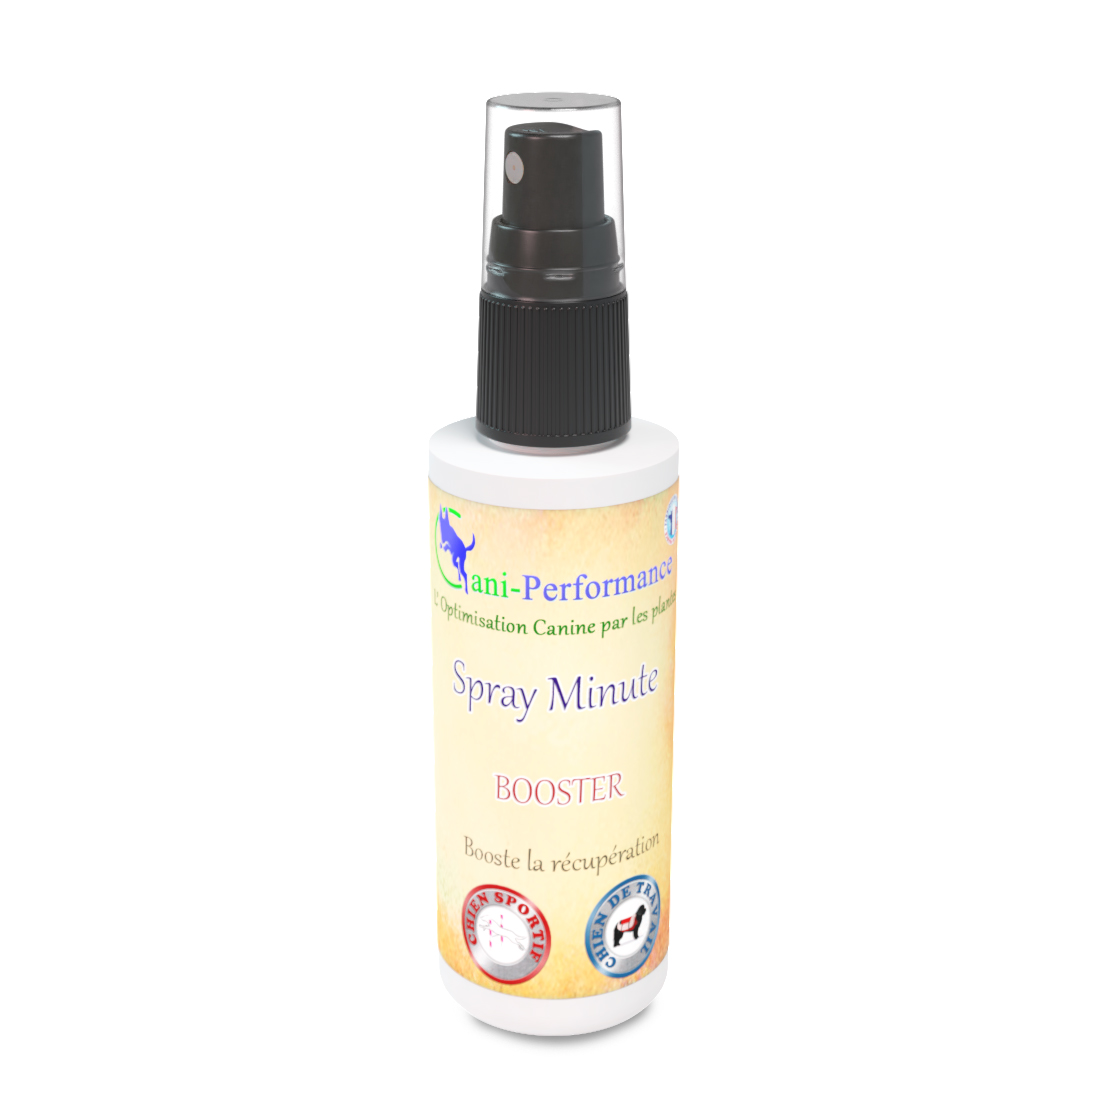 Spray minute booster